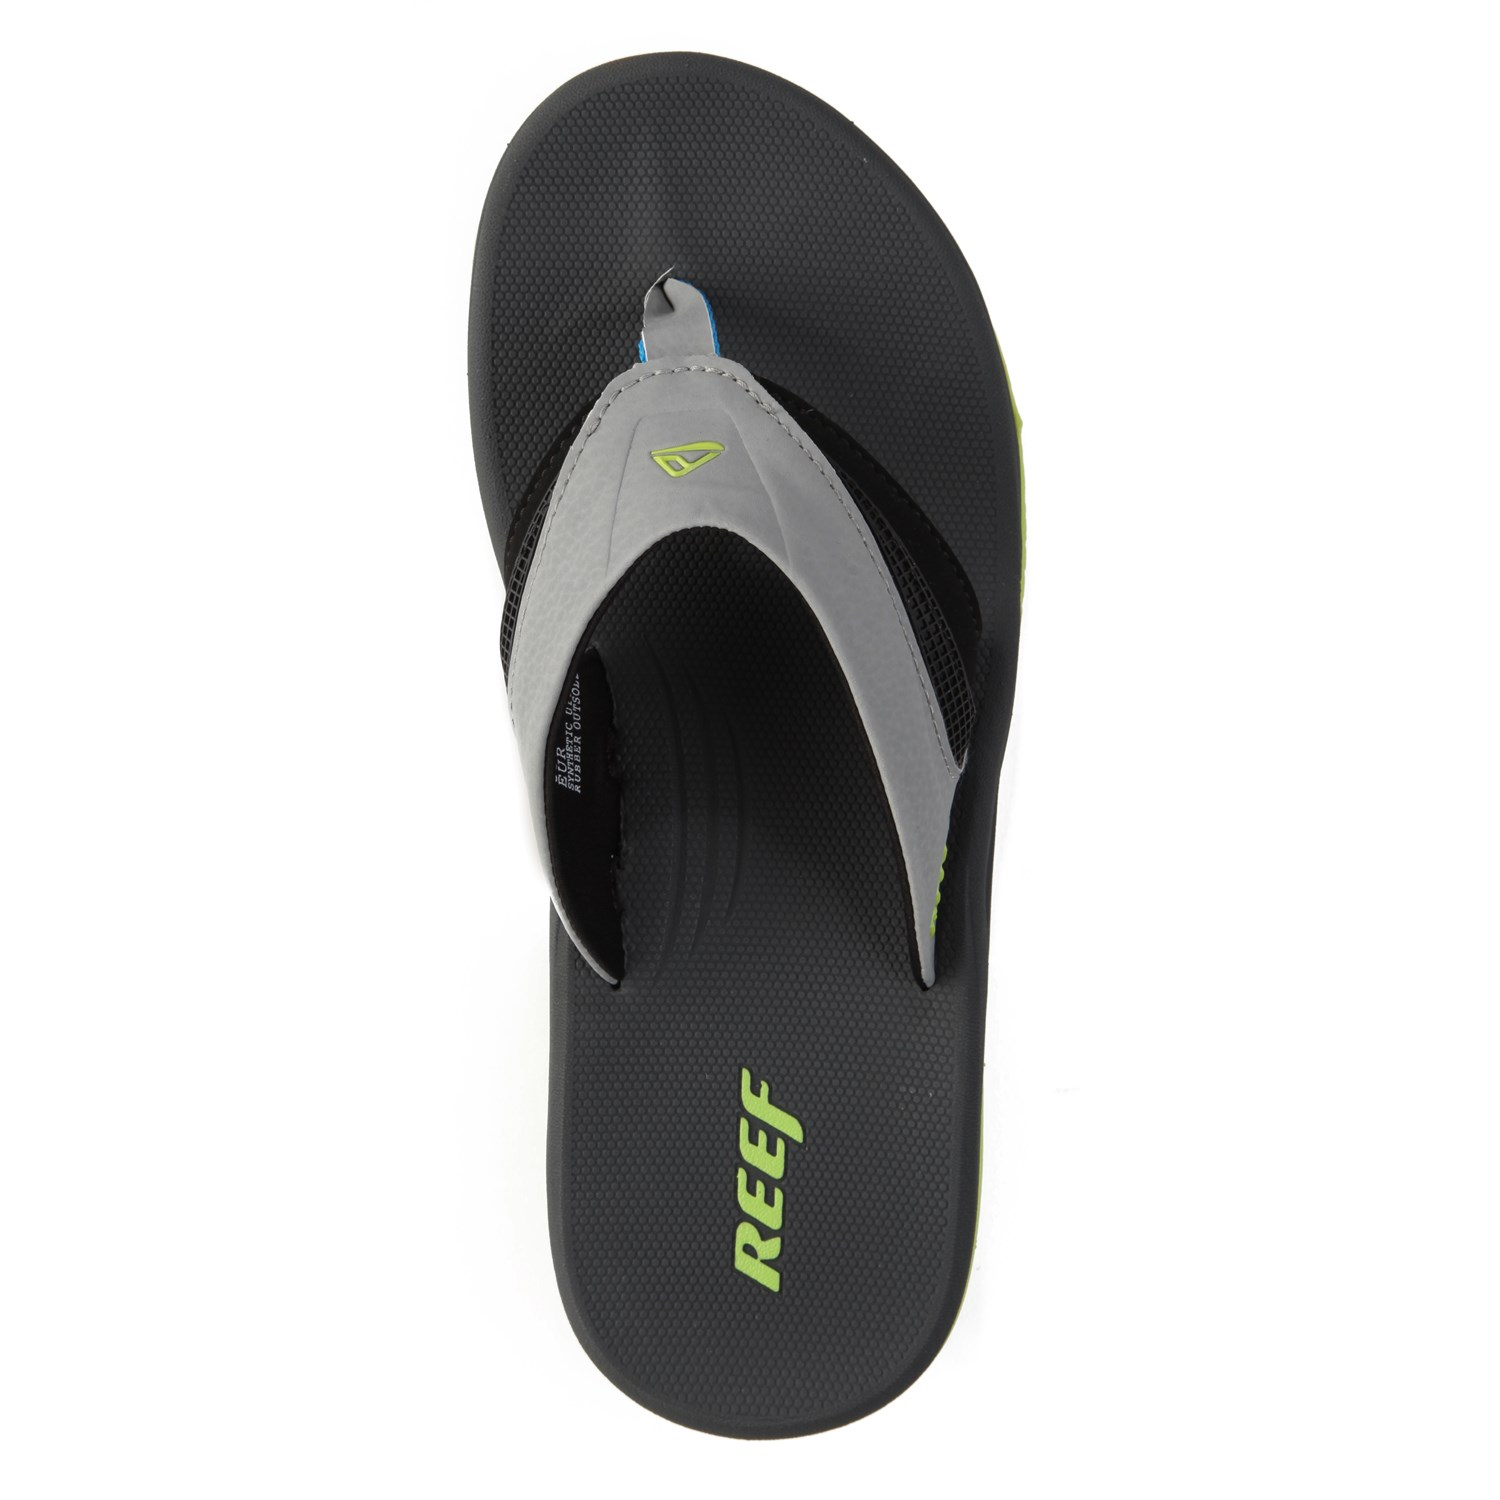 ee21680bab1 Reef Phantom Player Sandals